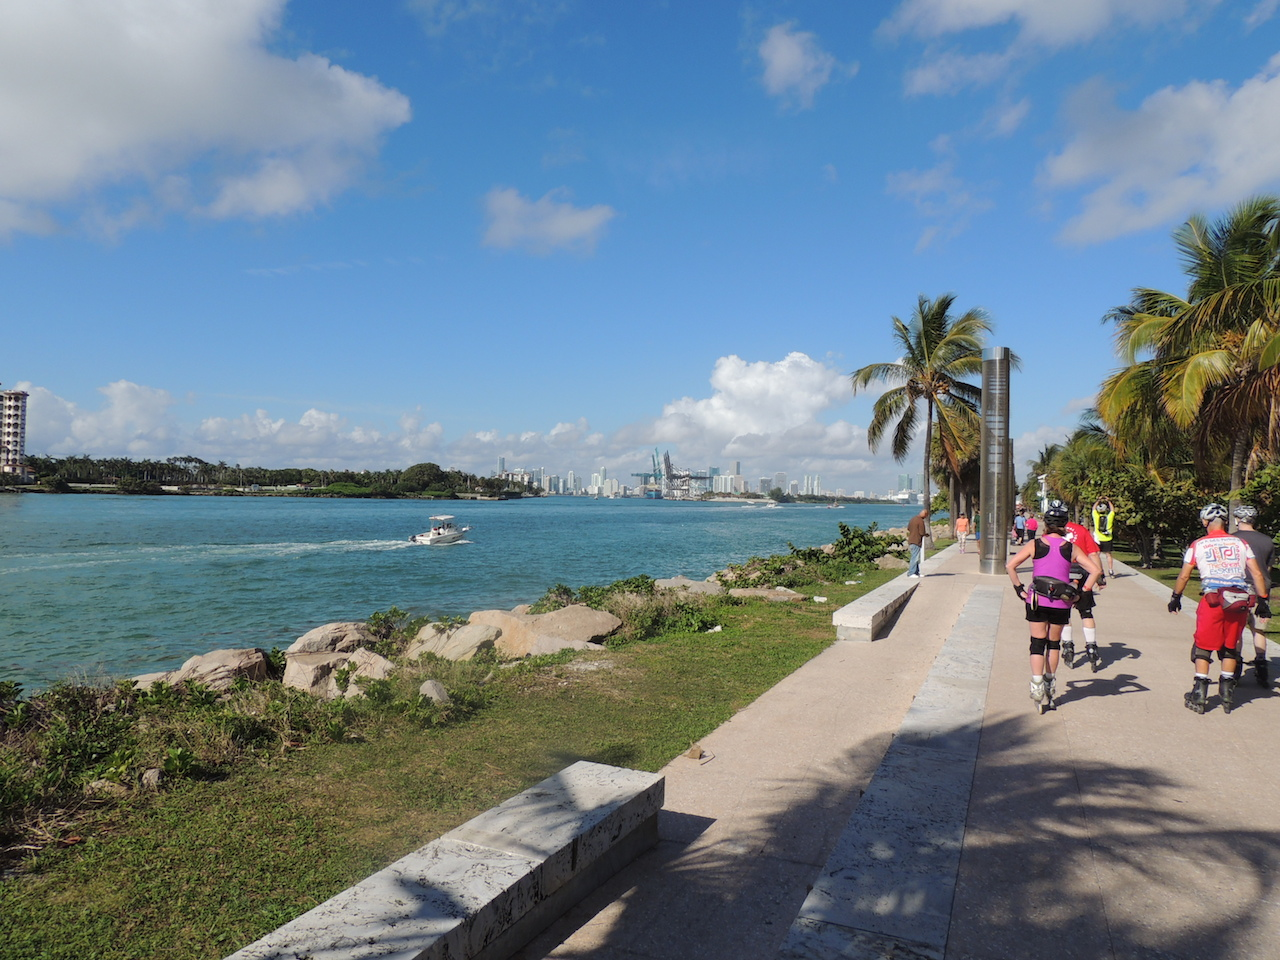 Miami in February - beautiful views for skaters to enjoy!